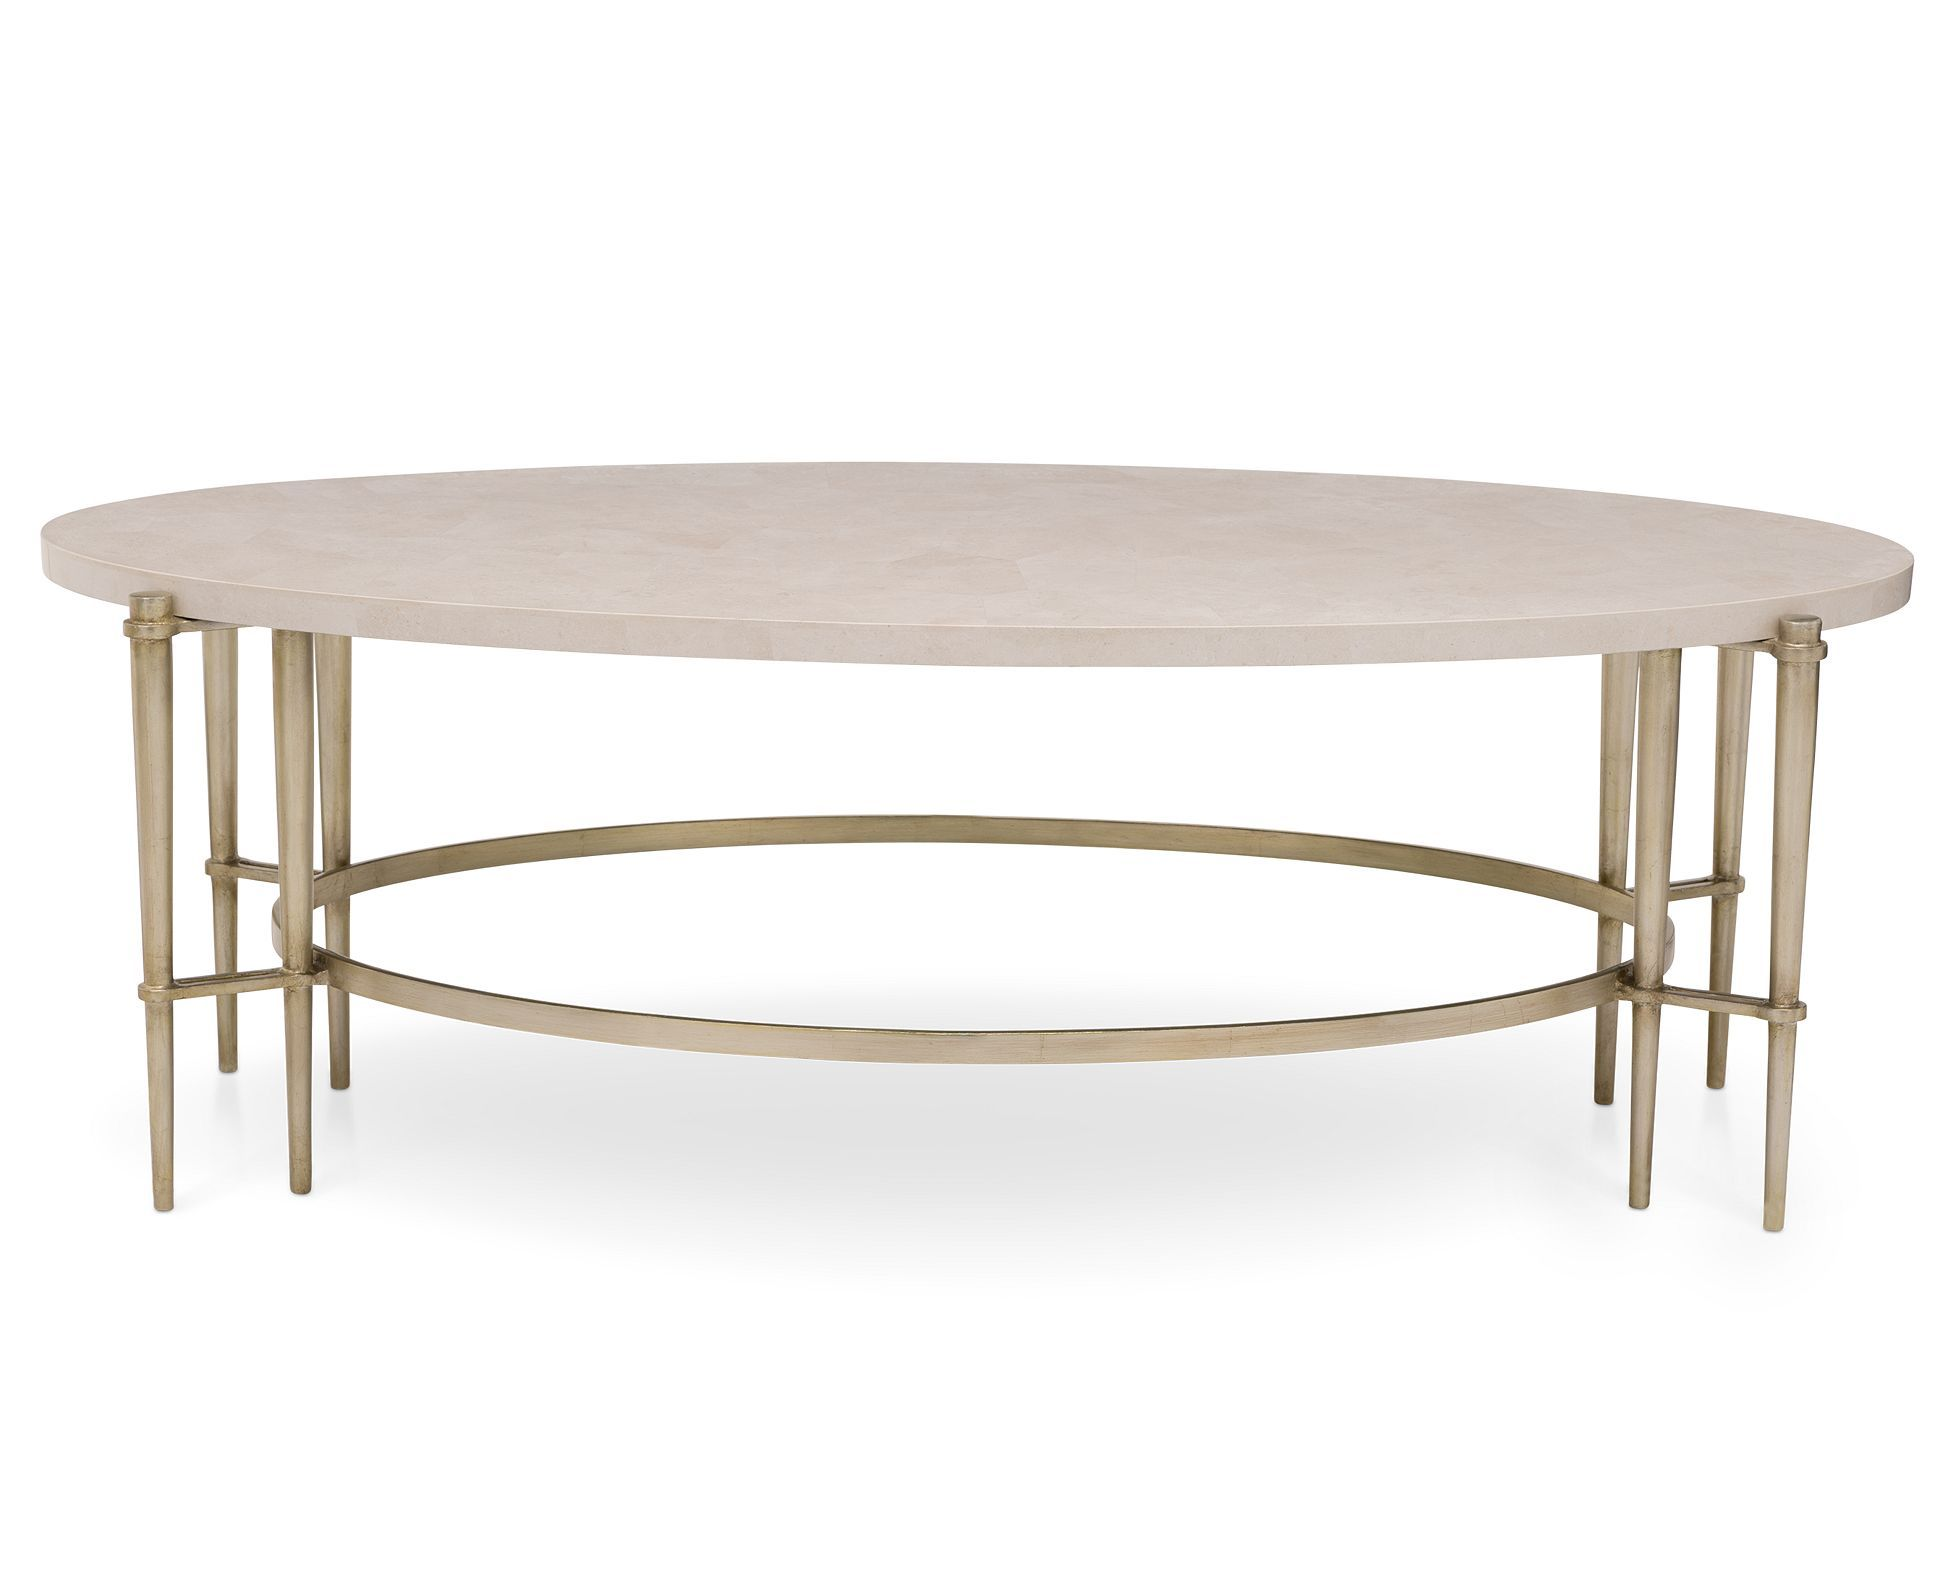 Toulon Oval Coffee Table By Henredon Is Where White Quartz Meets Silver Metal Theshowroomatfr Luxurylivingroom Rowe Furniture Coffee Table Furniture